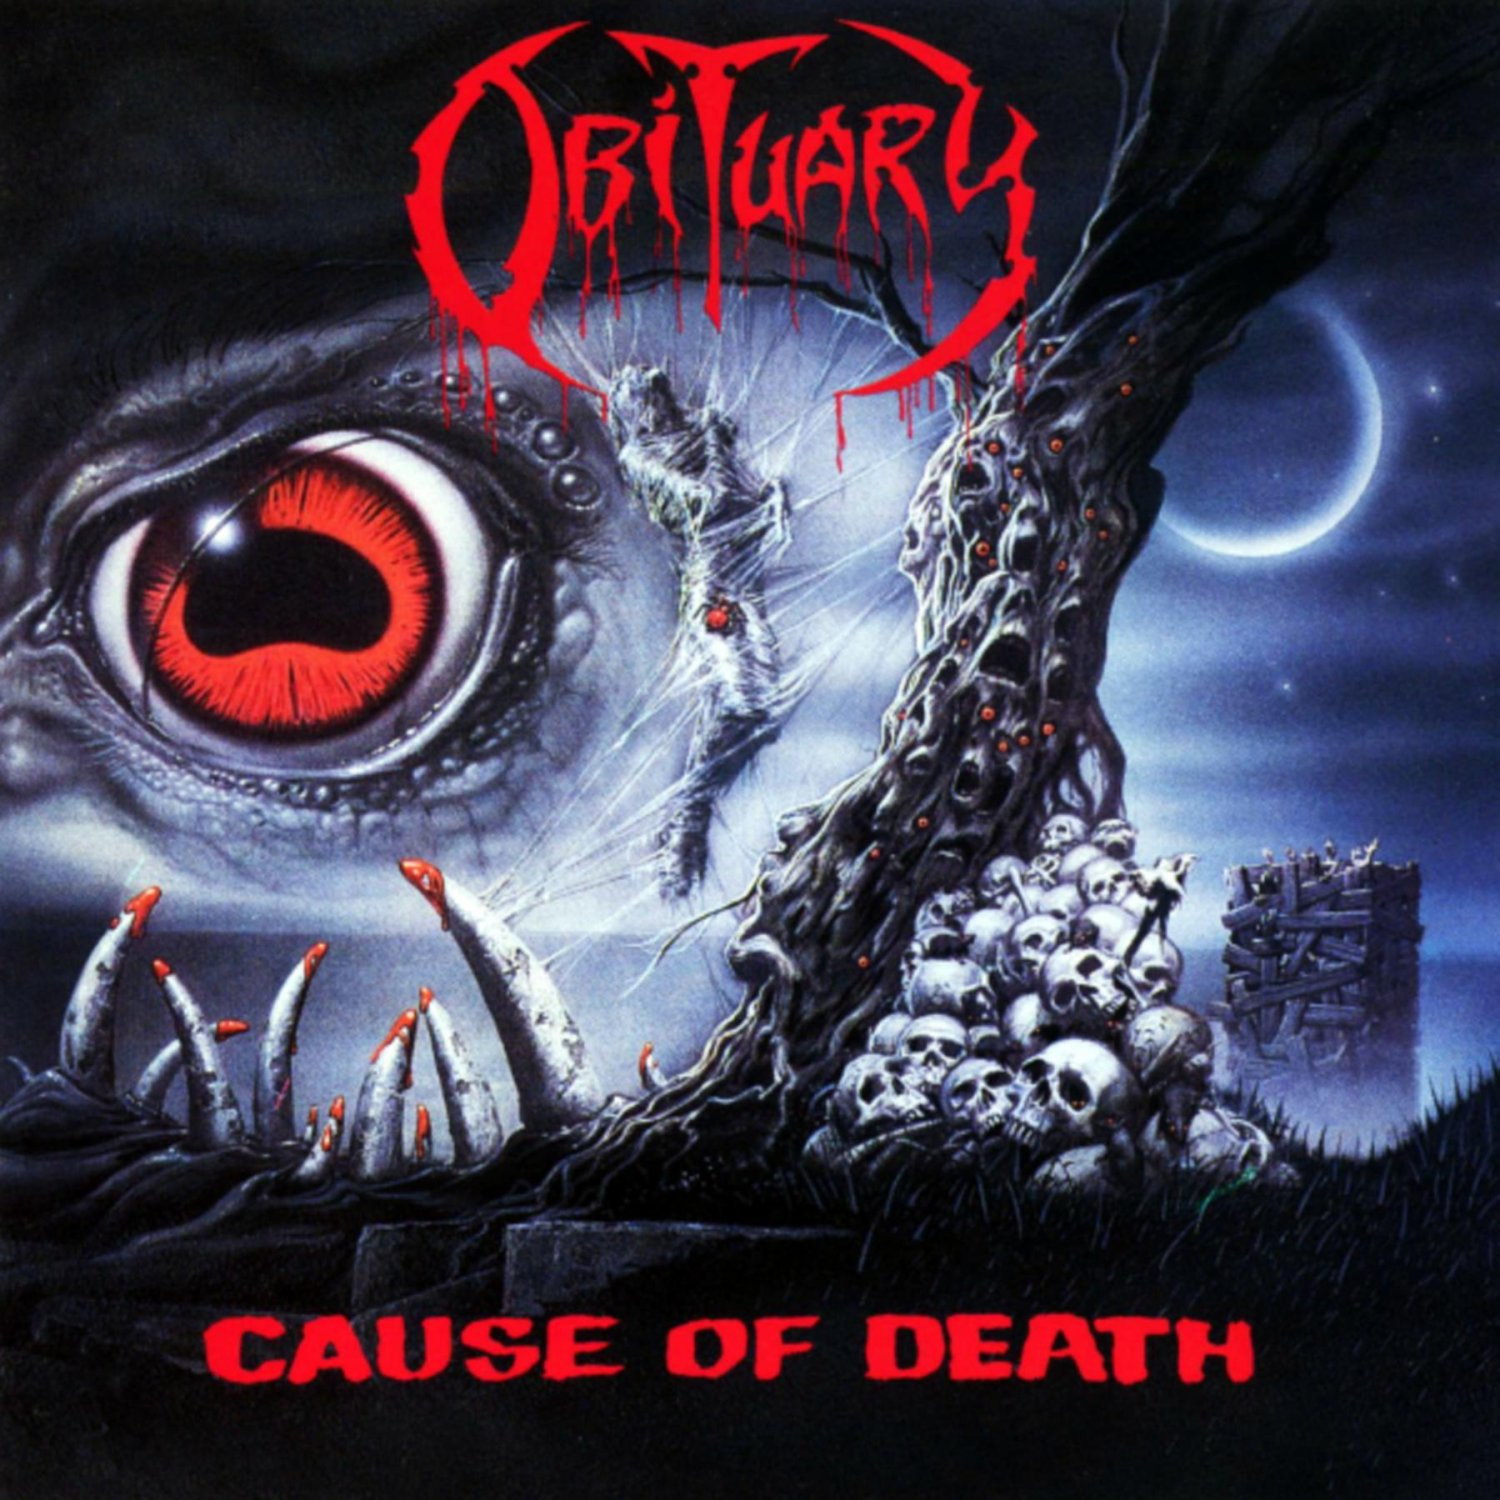 OBITUARY Cause of Death BANNER Huge 4X4 Ft Fabric Poster Tapestry Flag Print album cover art